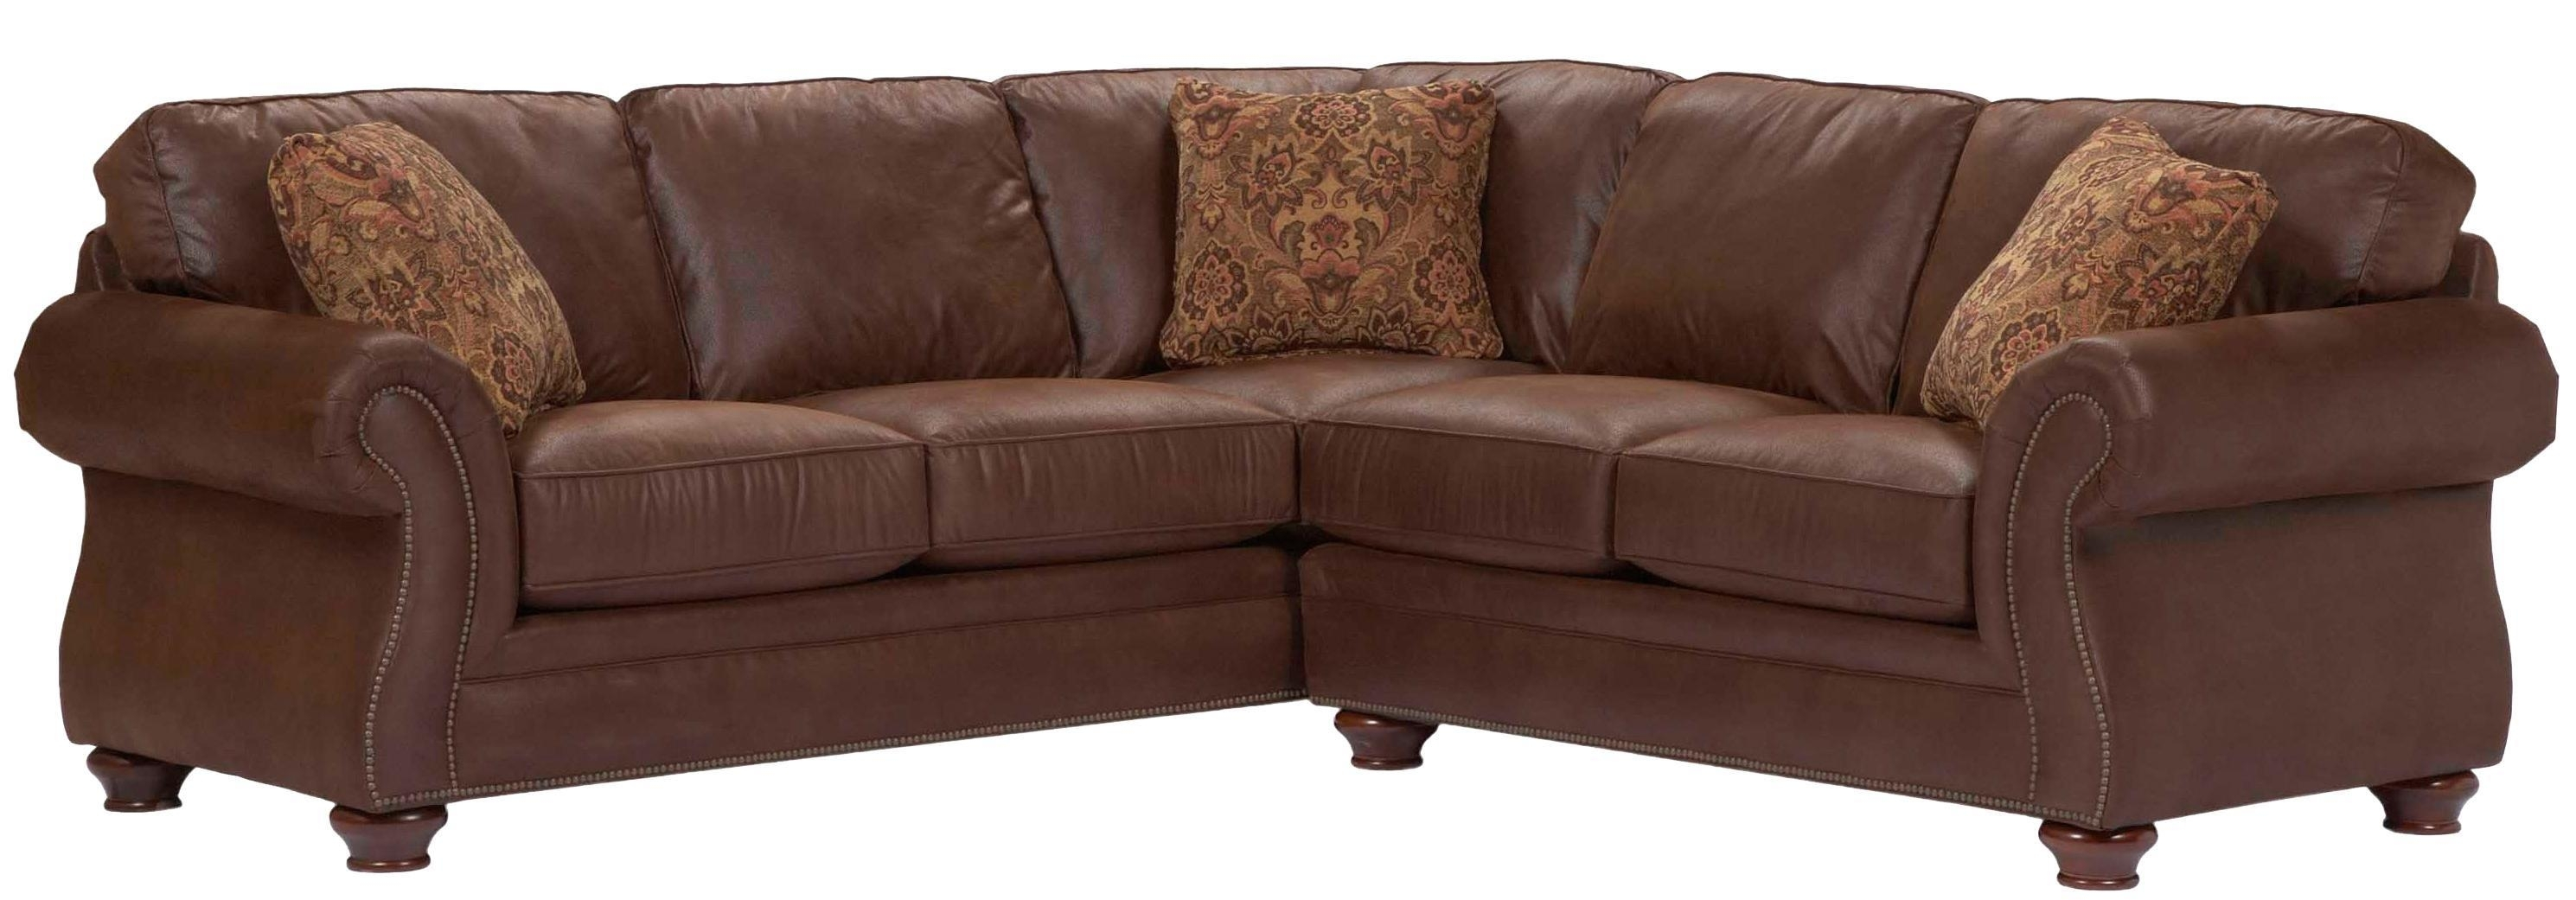 Broyhill Furniture Laramie 2 Piece Corner Sectional Sofa – Ahfa Throughout Quincy Il Sectional Sofas (Image 3 of 10)